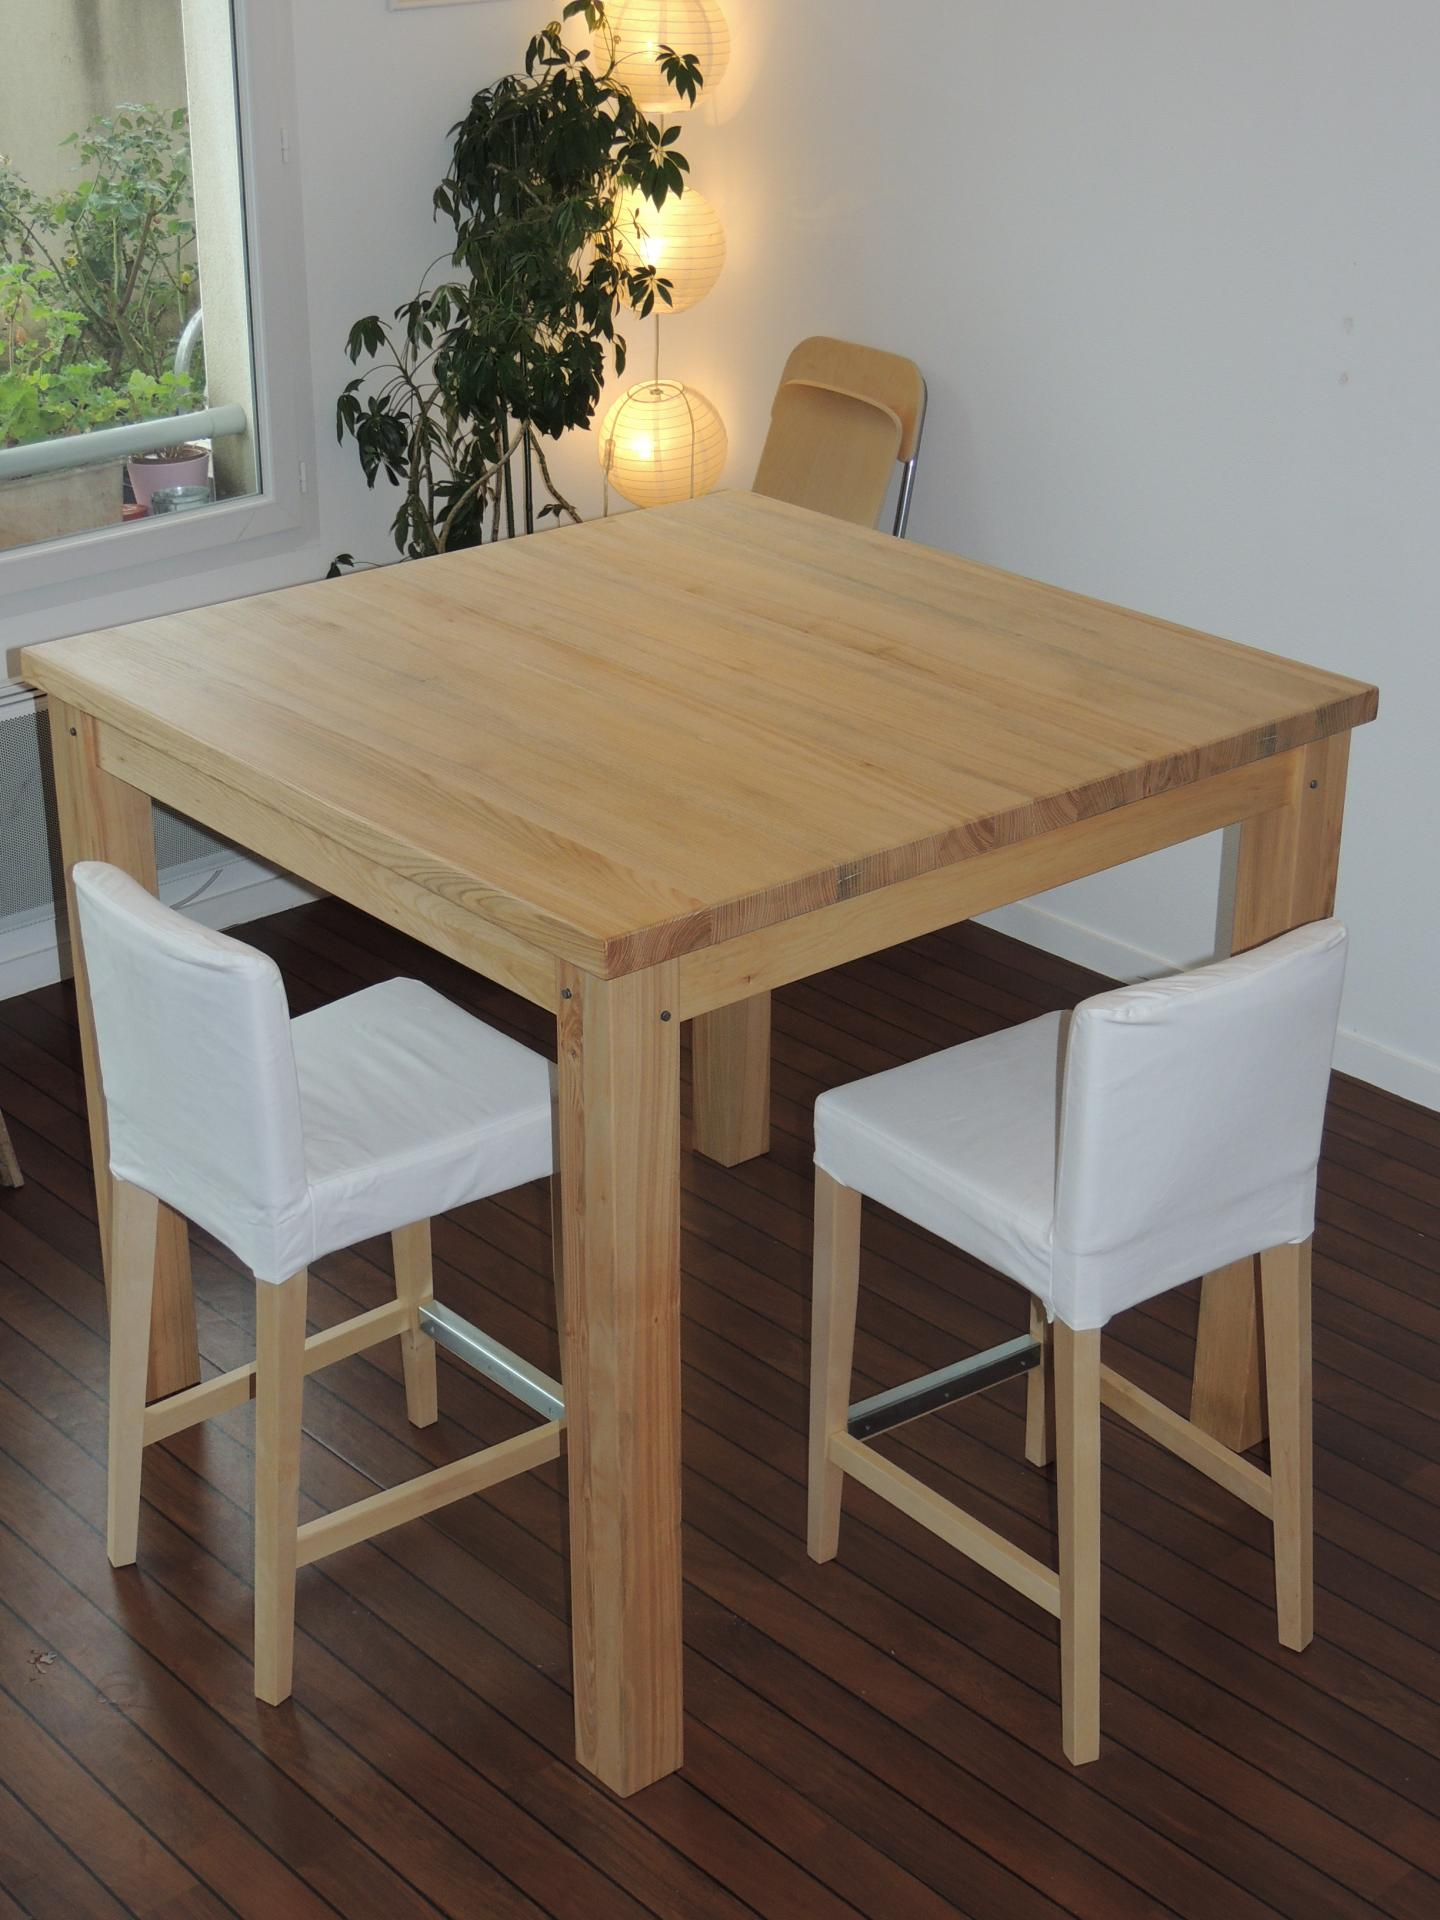 www.ateliercannelle.com/en/ (17)- square high Table - ash tree